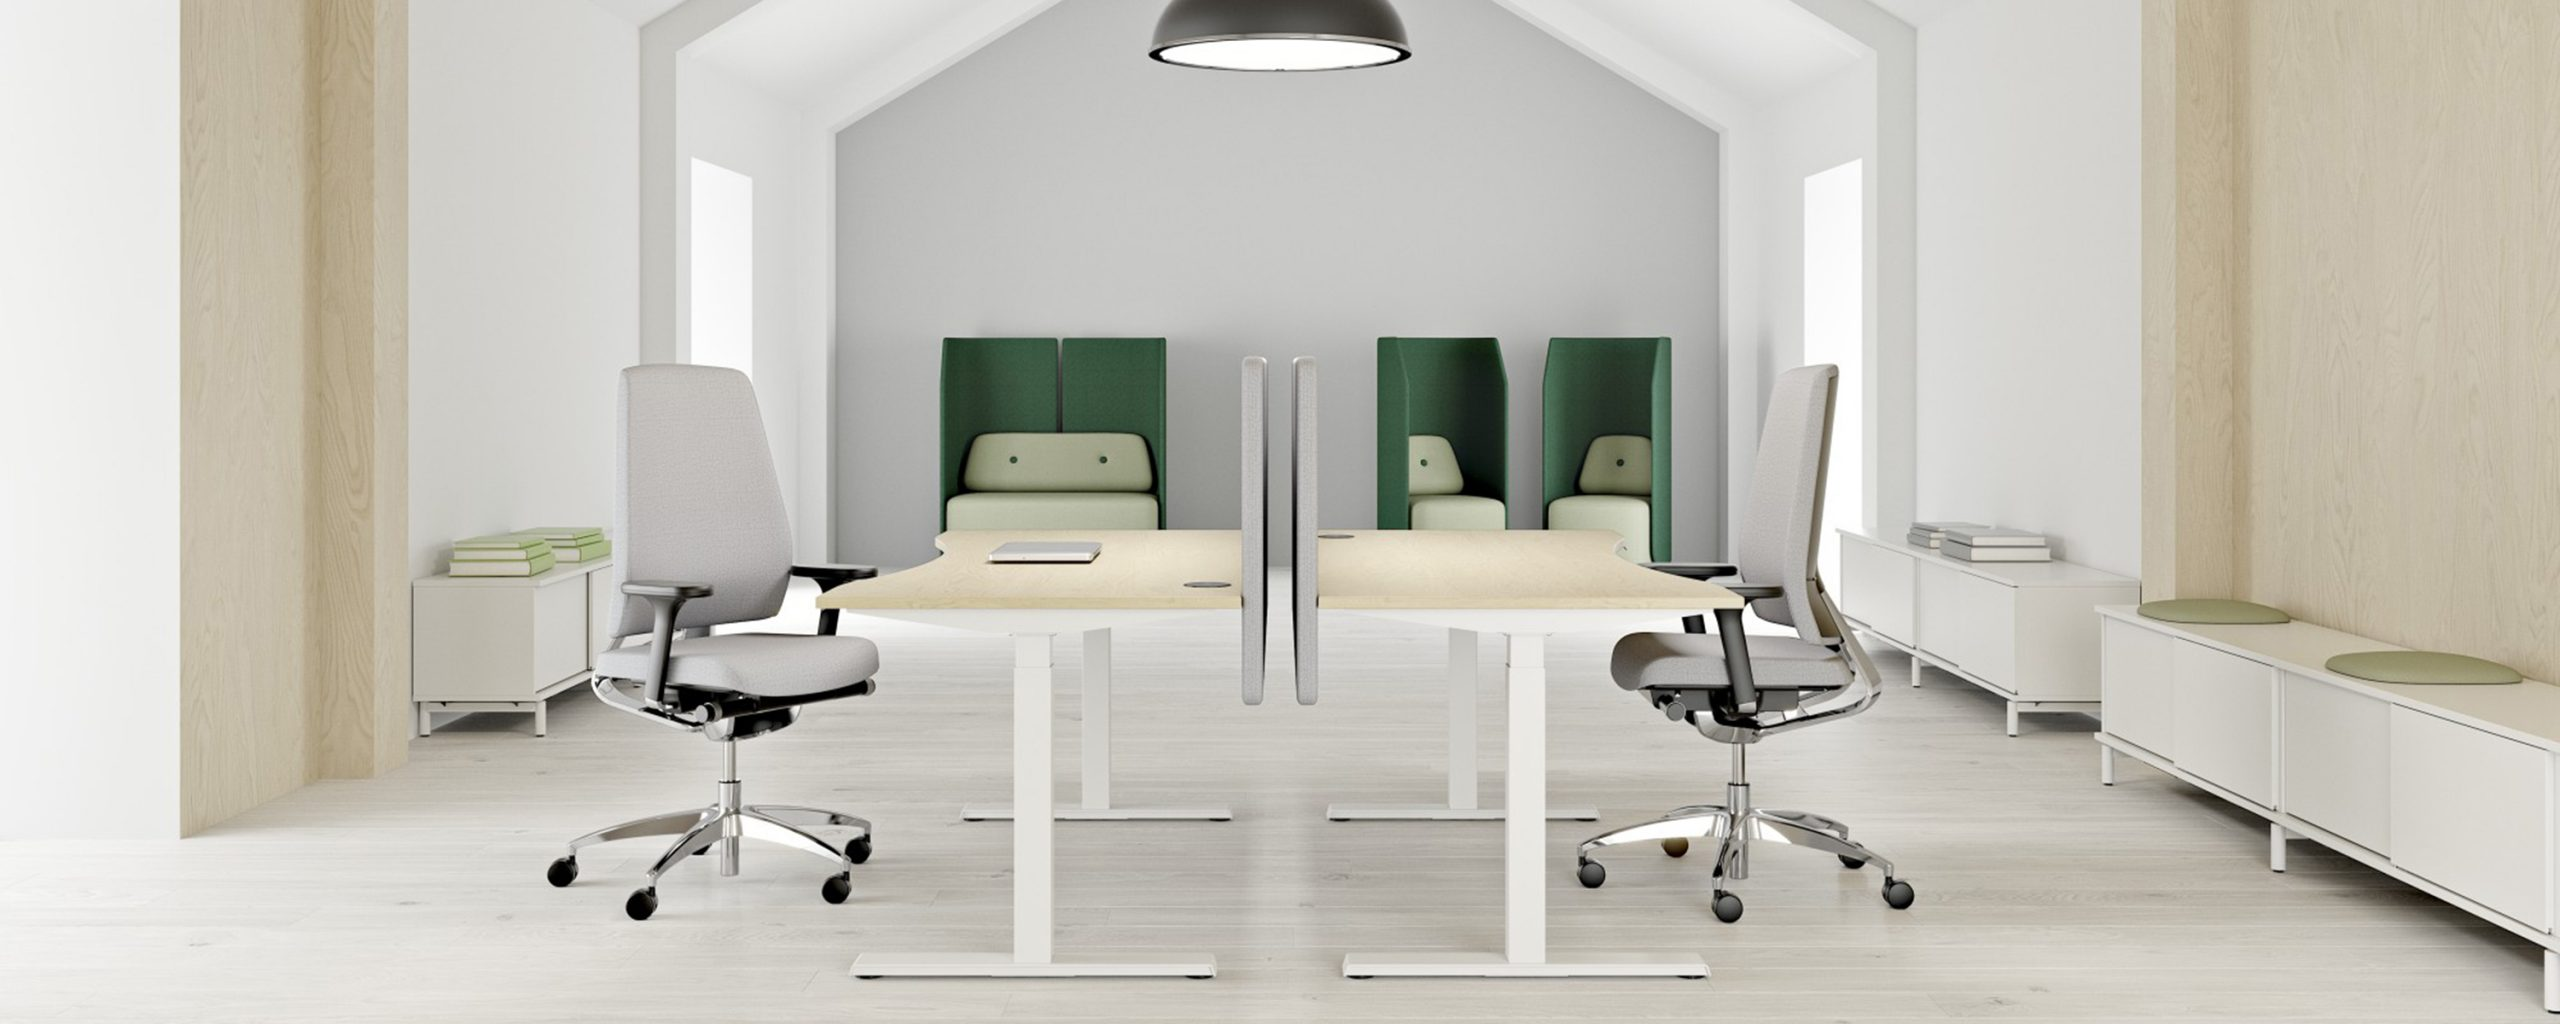 OFFICE INTERIOR DESIGN TRENDS IN LONDON